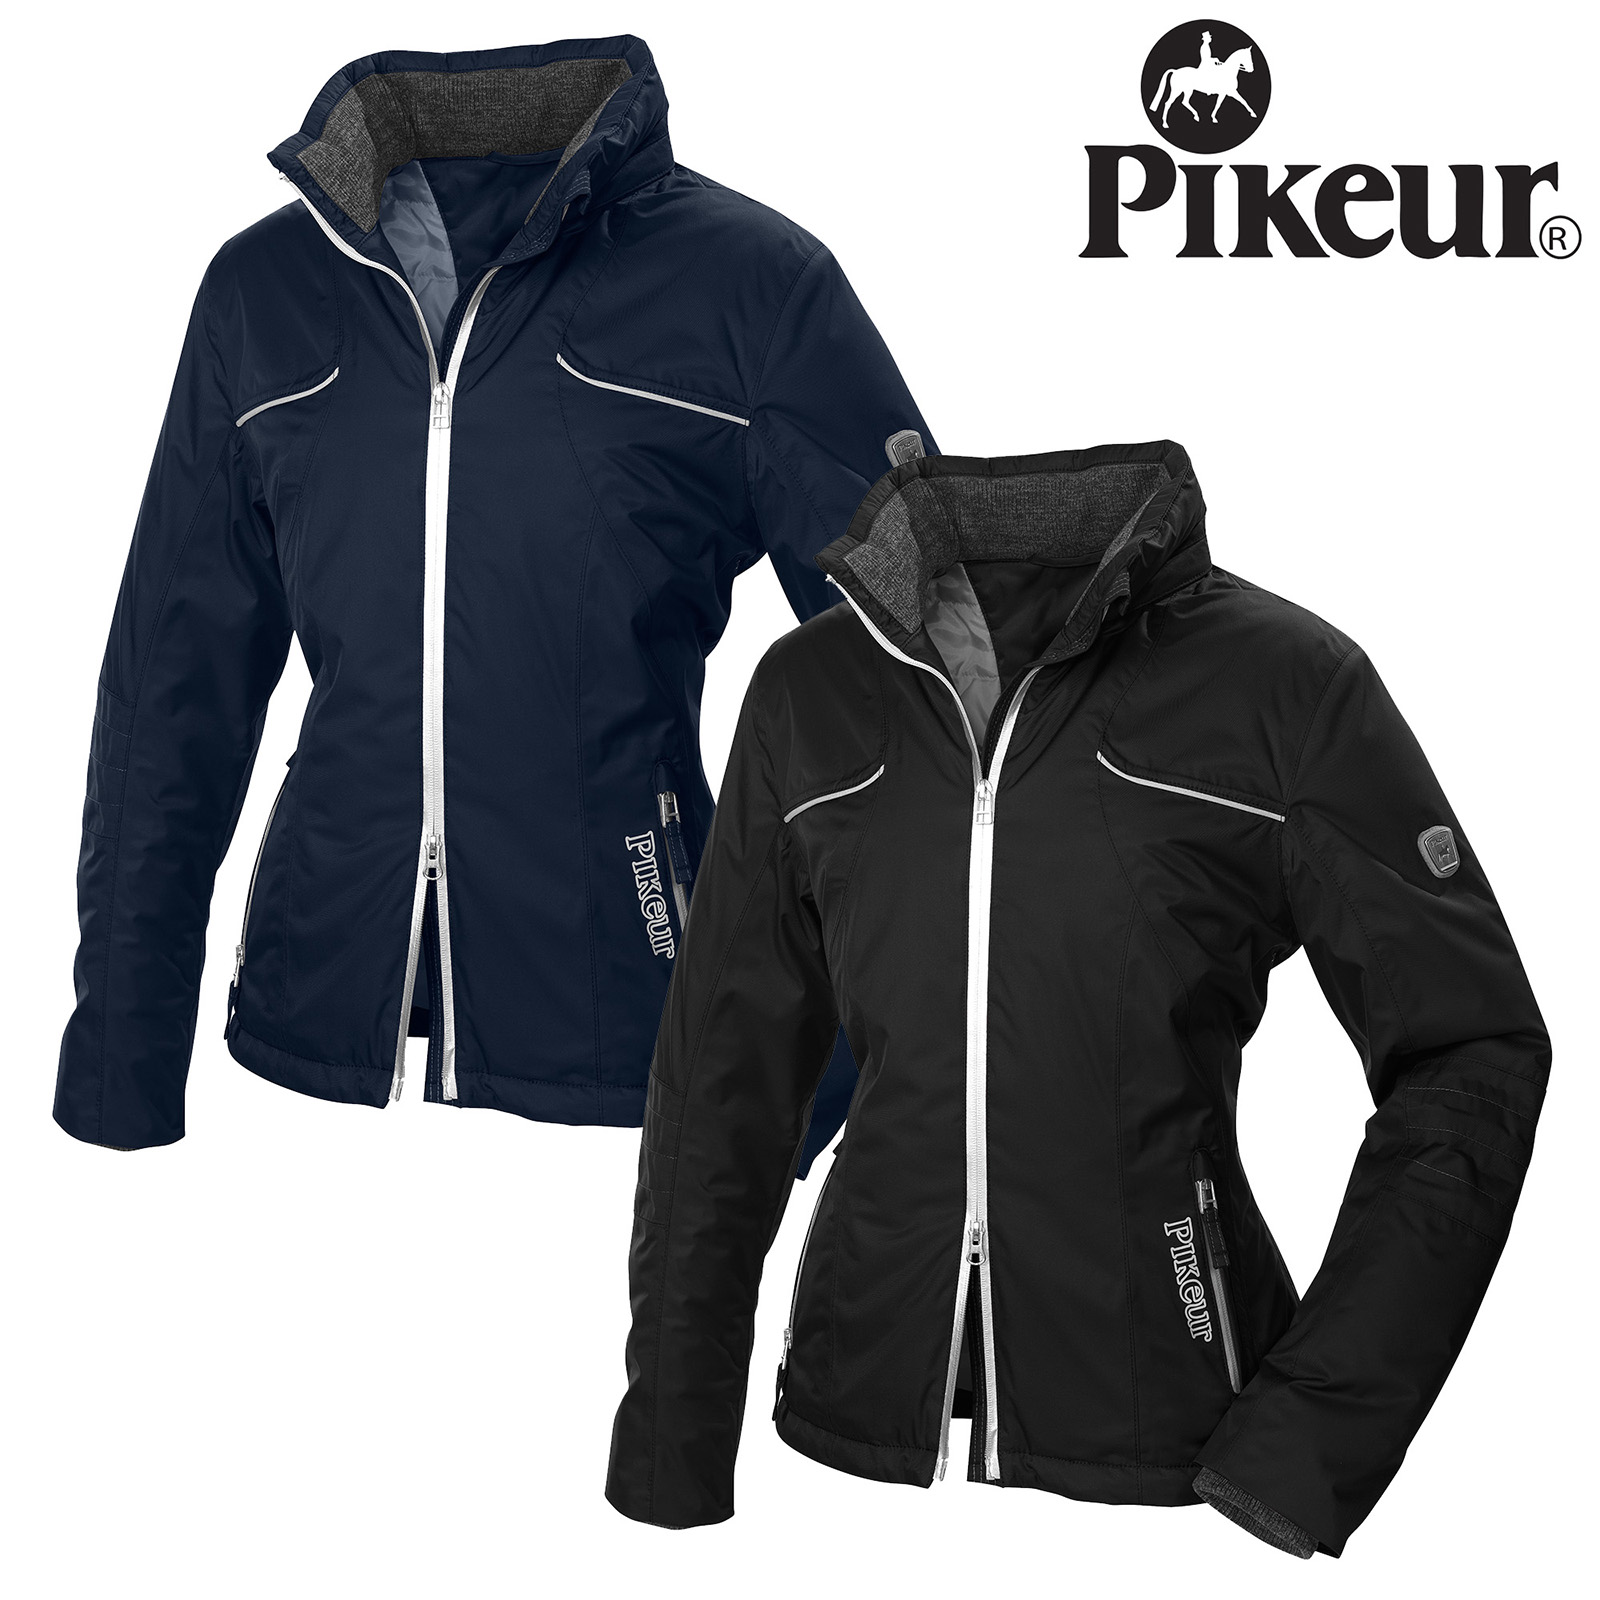 Dressage Clothing, Pikeur and Anky Specialist Suppliers - Cool Equestrian, UK